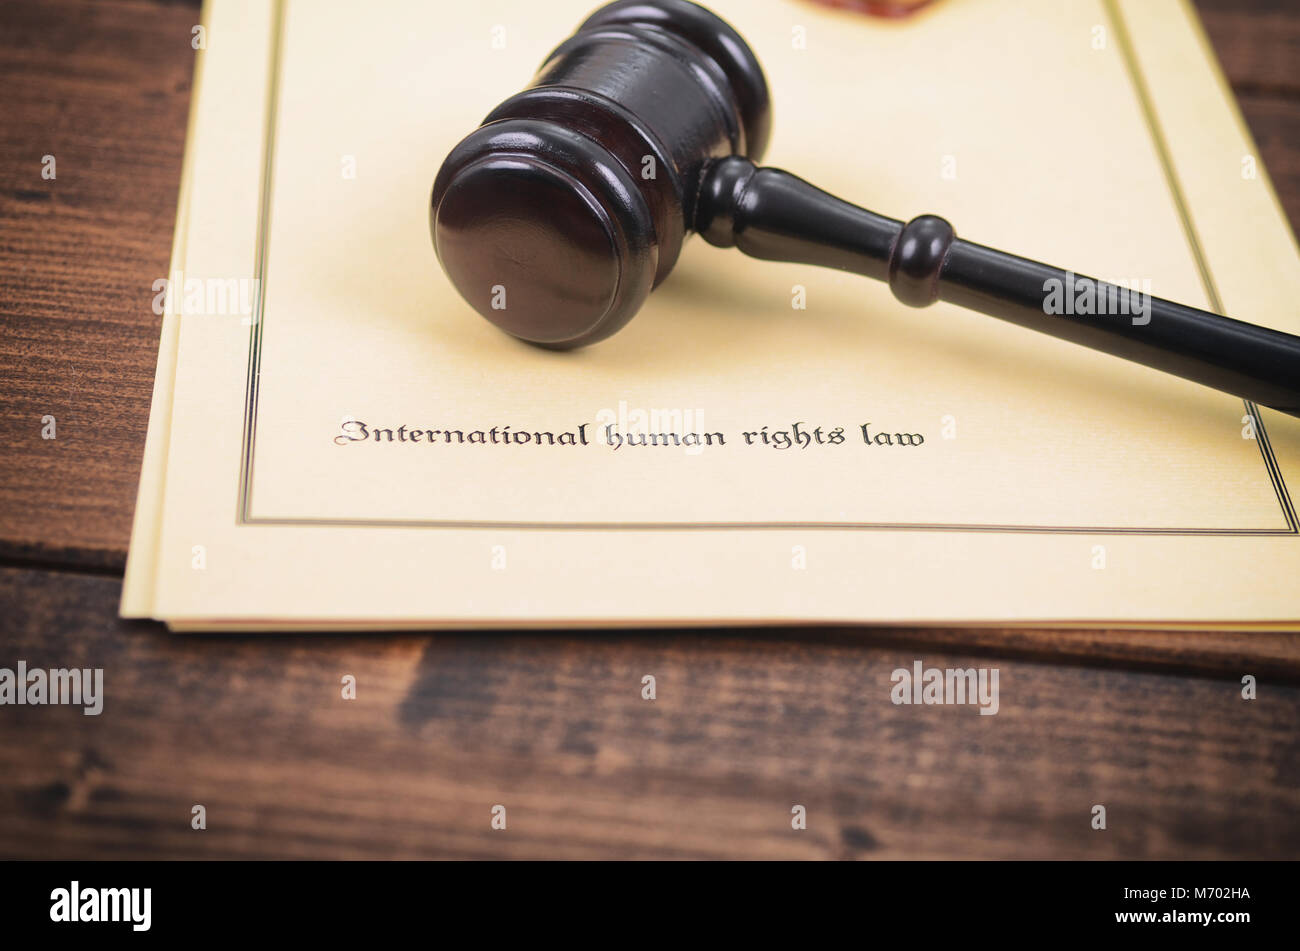 Law and Justice, Legality concept, Notary seal, Judge Gavel , International human rights law concept. - Stock Image